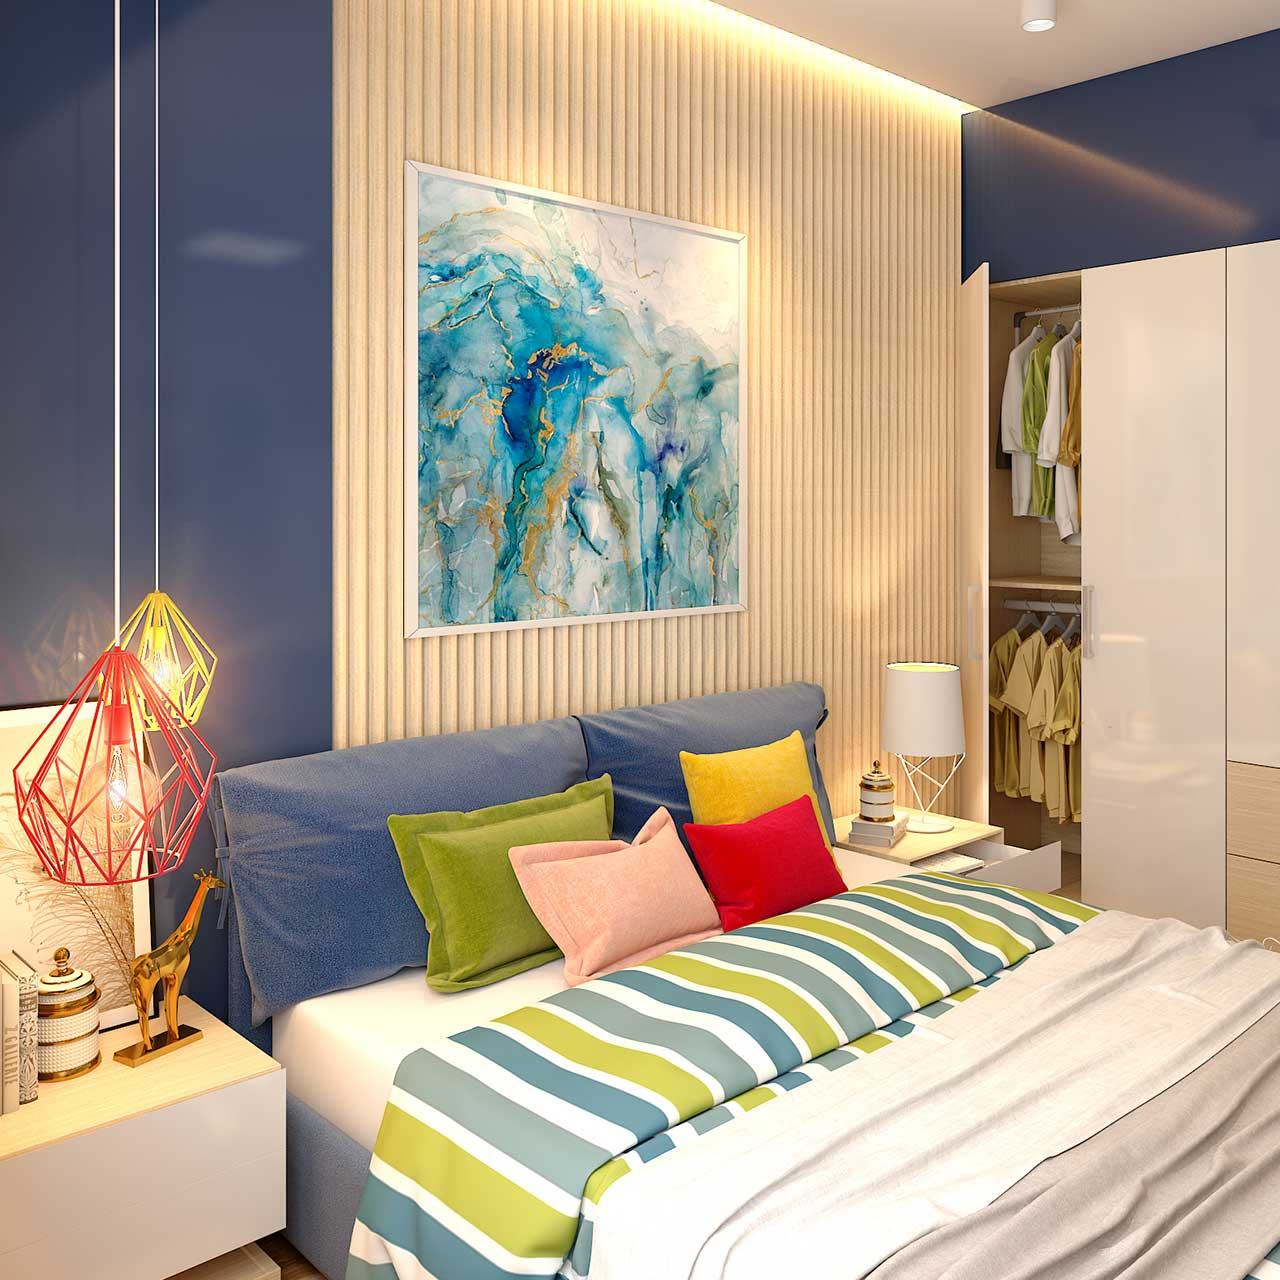 Eclectic Style Apartment Interior Bedroom Design